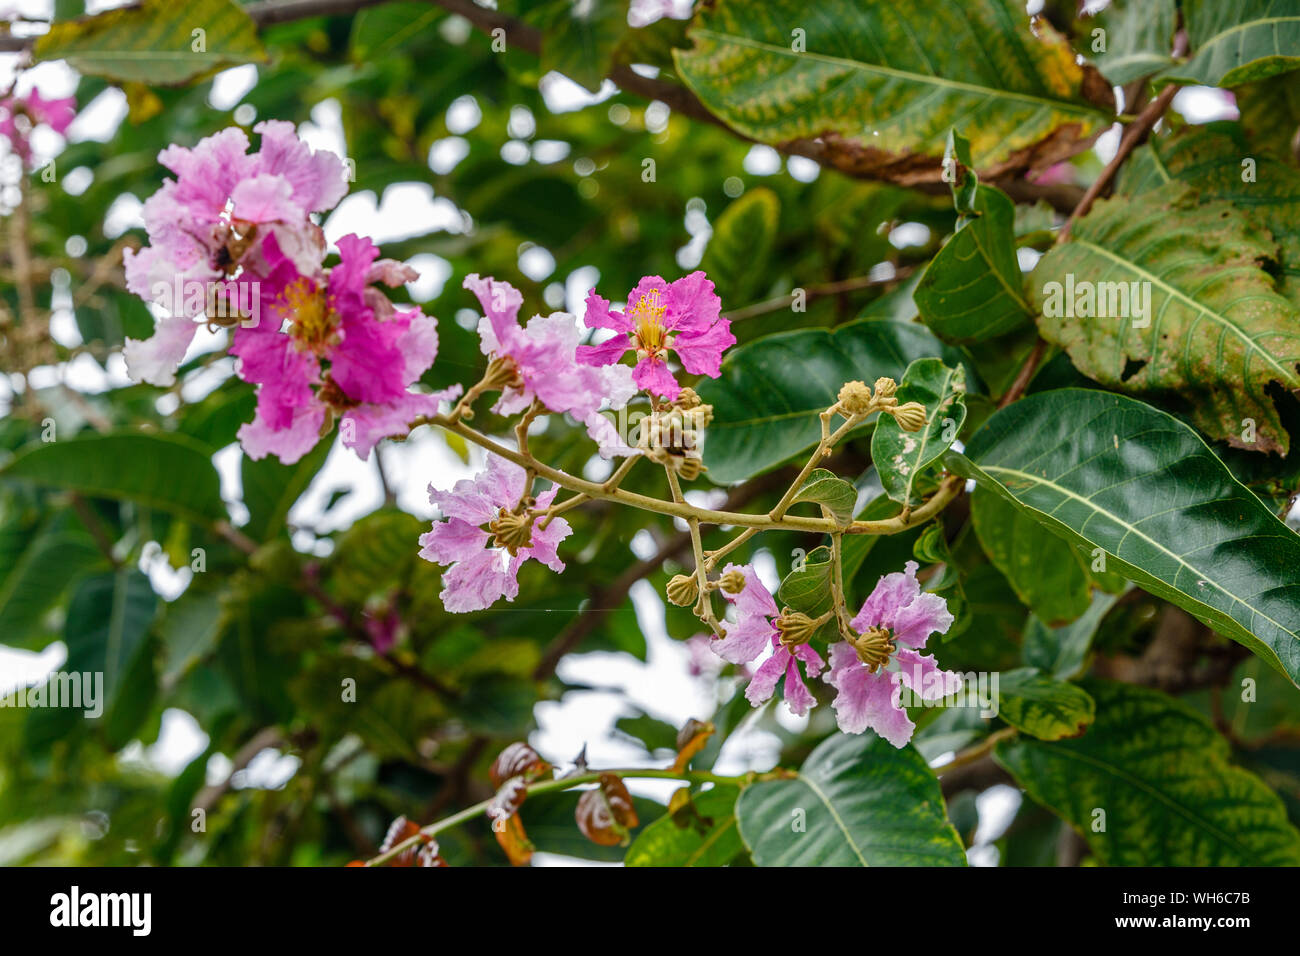 Blooming pink Lagerstroemia, or crapemyrtle tree in a park in Bangkok, Thailand. Stock Photo